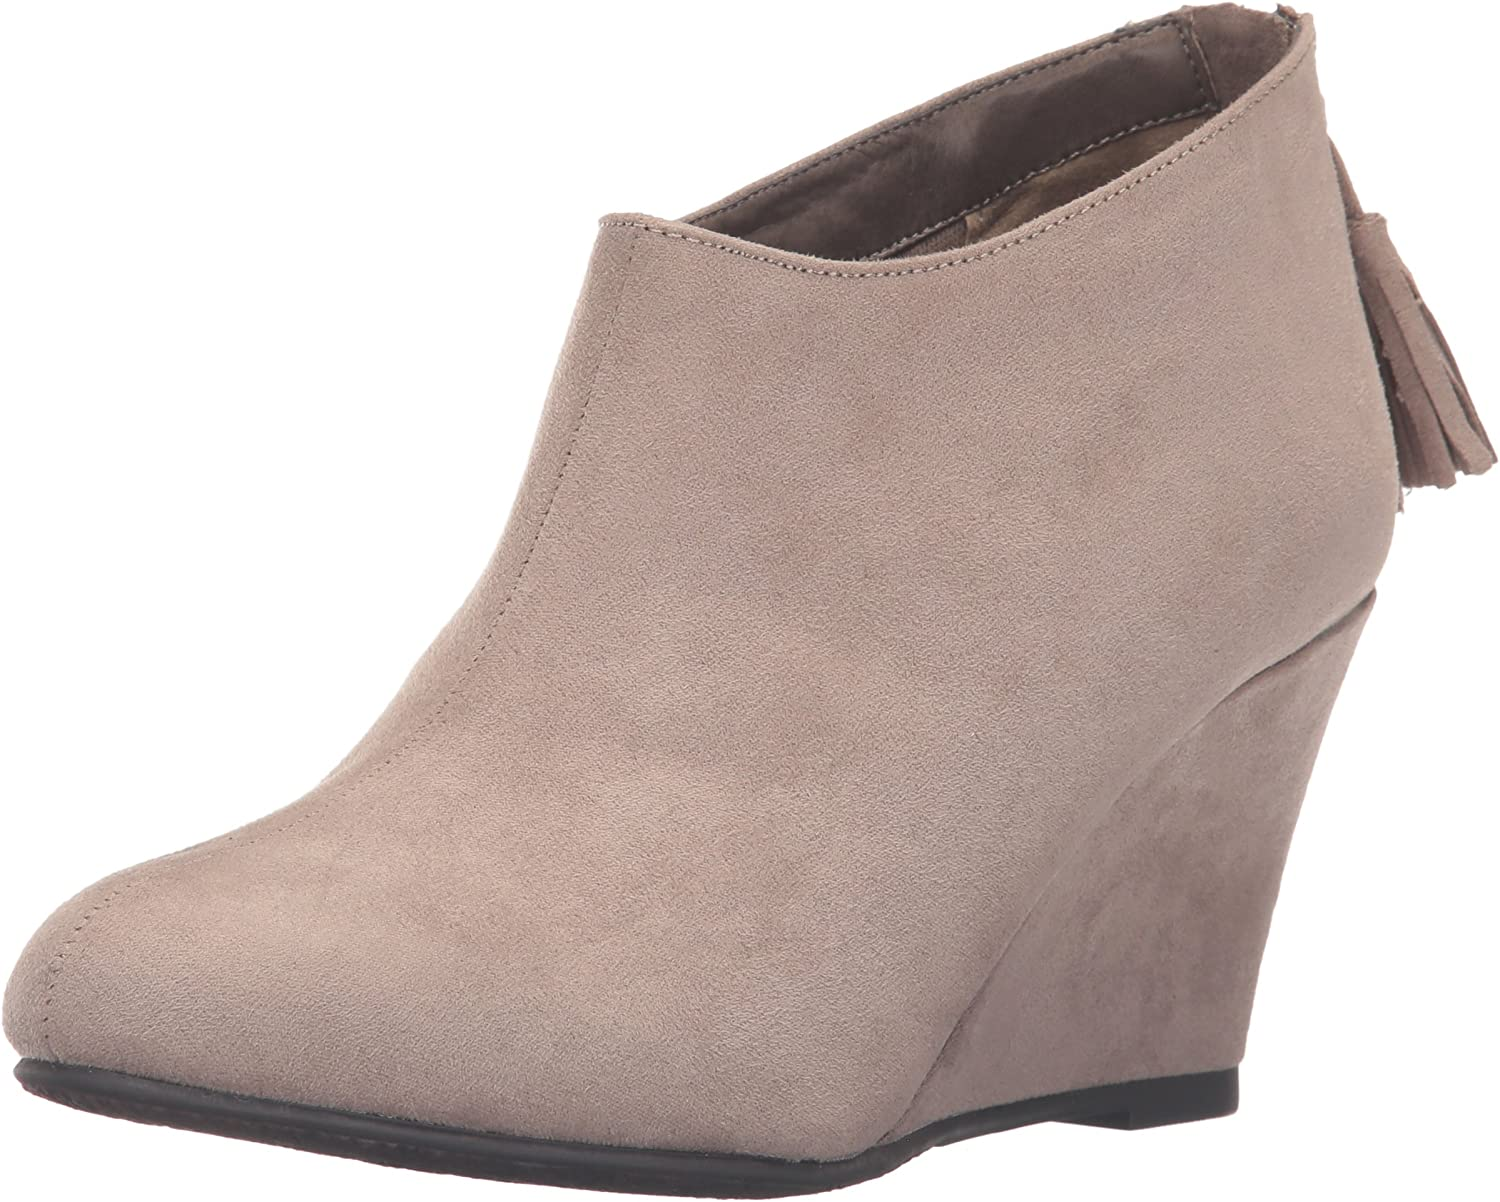 CL by Chinese Laundry Women's Via Wedge Bootie